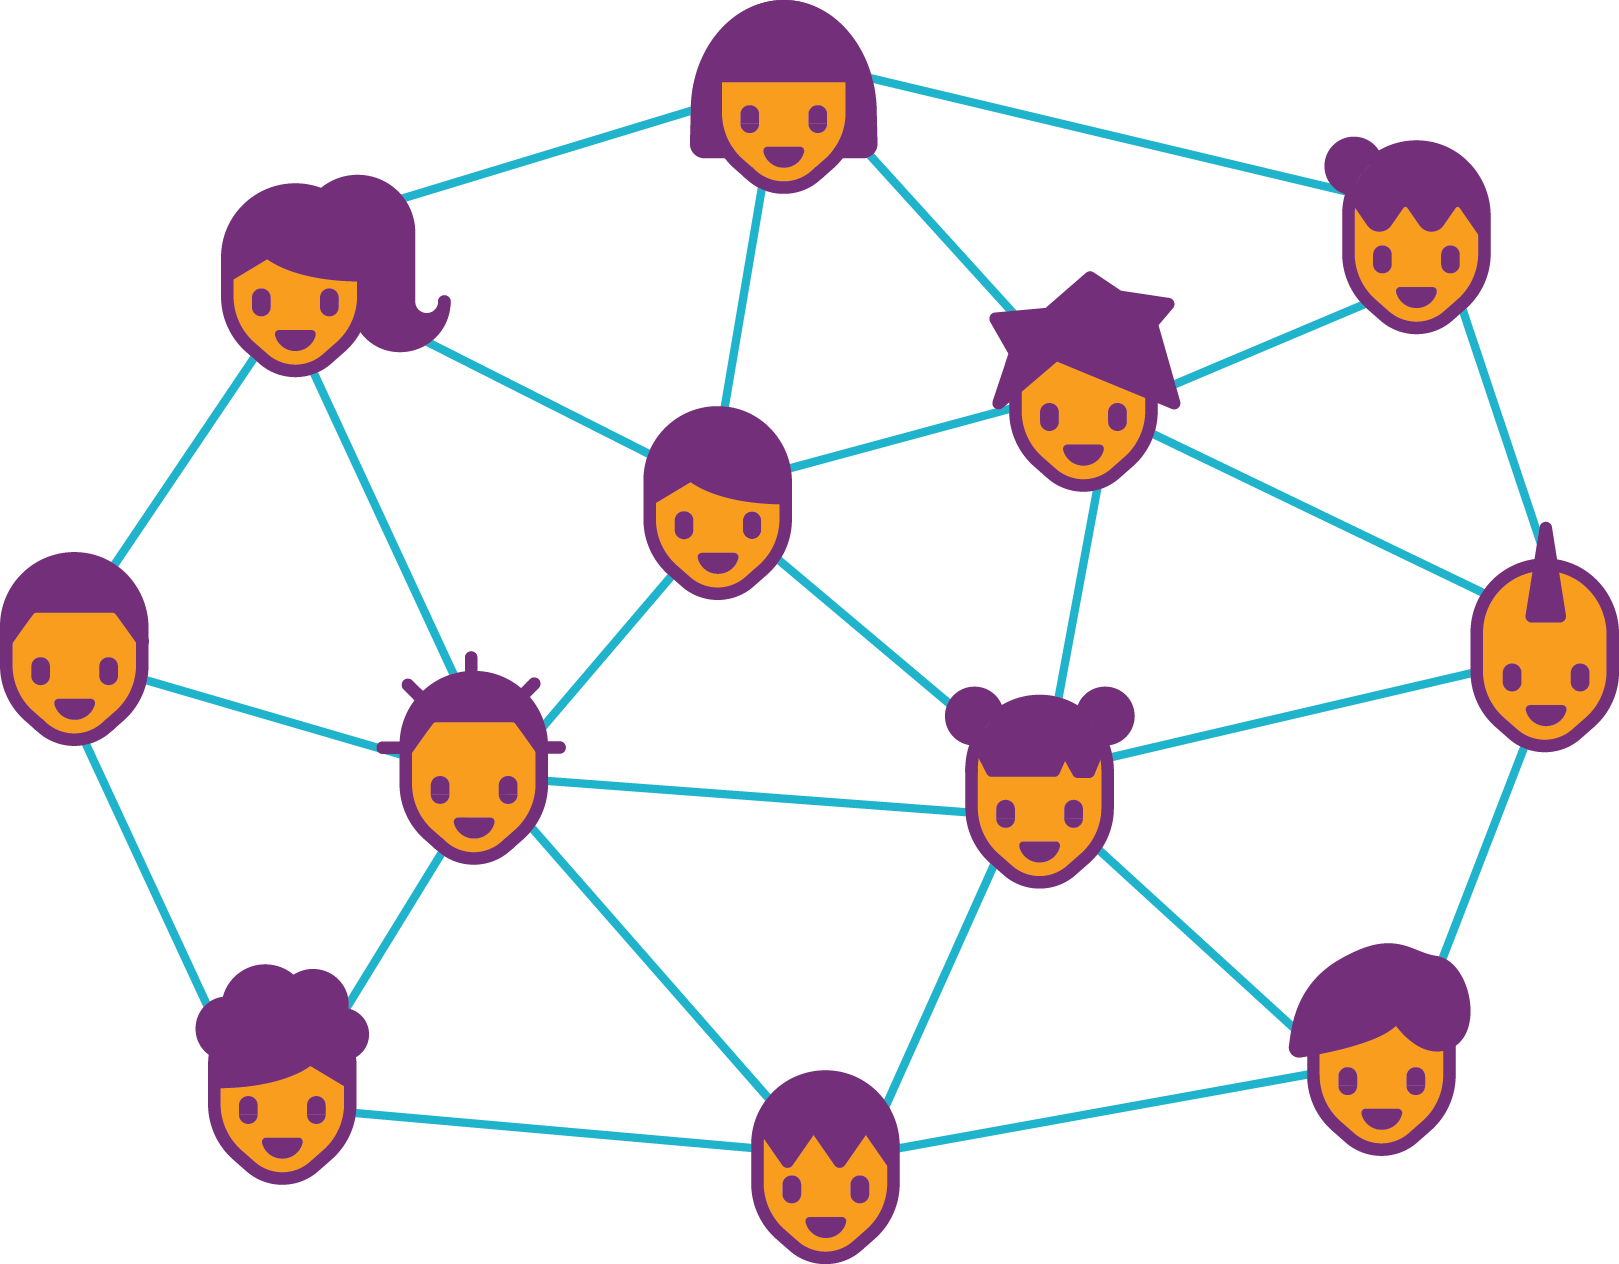 6. network.png